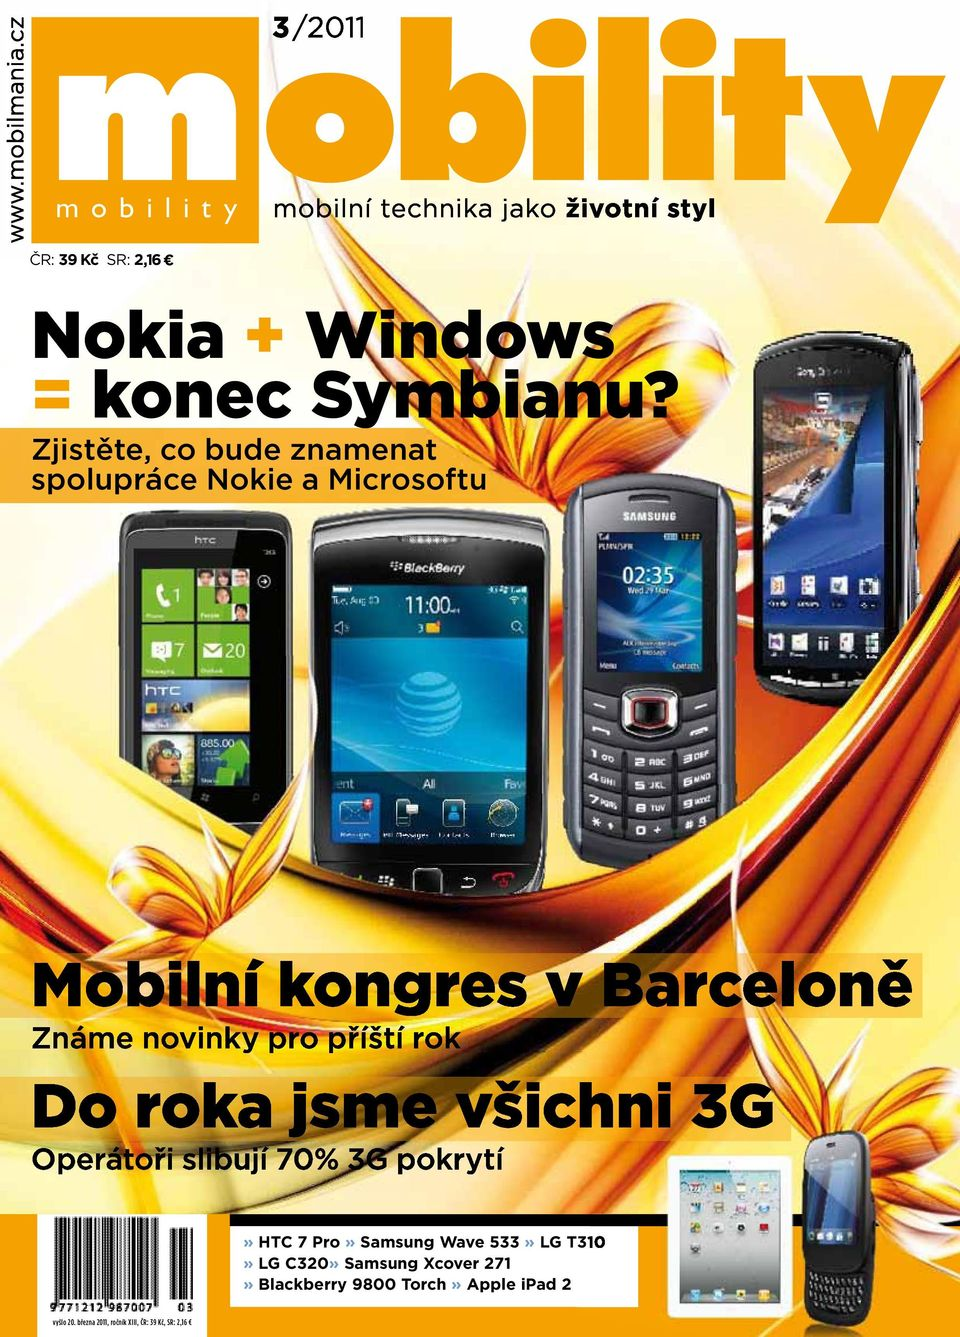 Pro» Samsung Wave 533» LG T310» LG C320» Samsung Xcover 271»